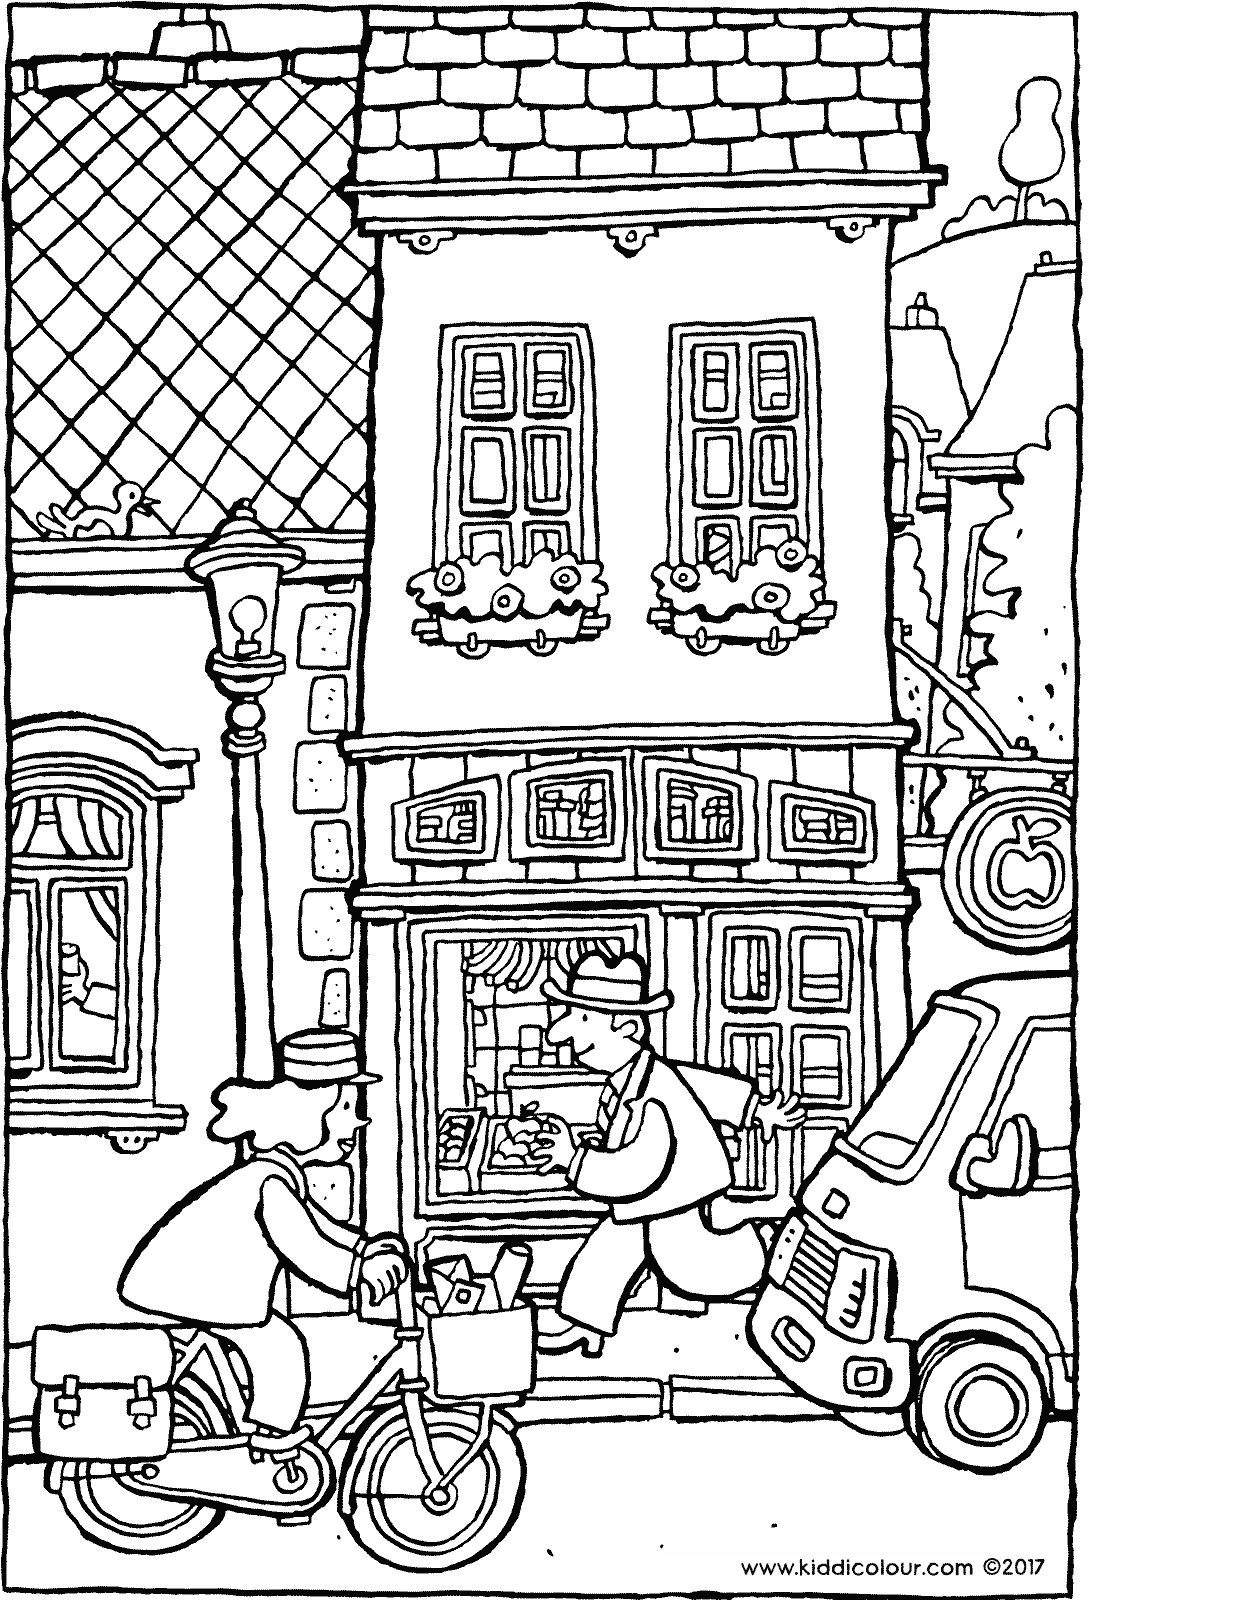 grocery store colouring page drawing picture 01V